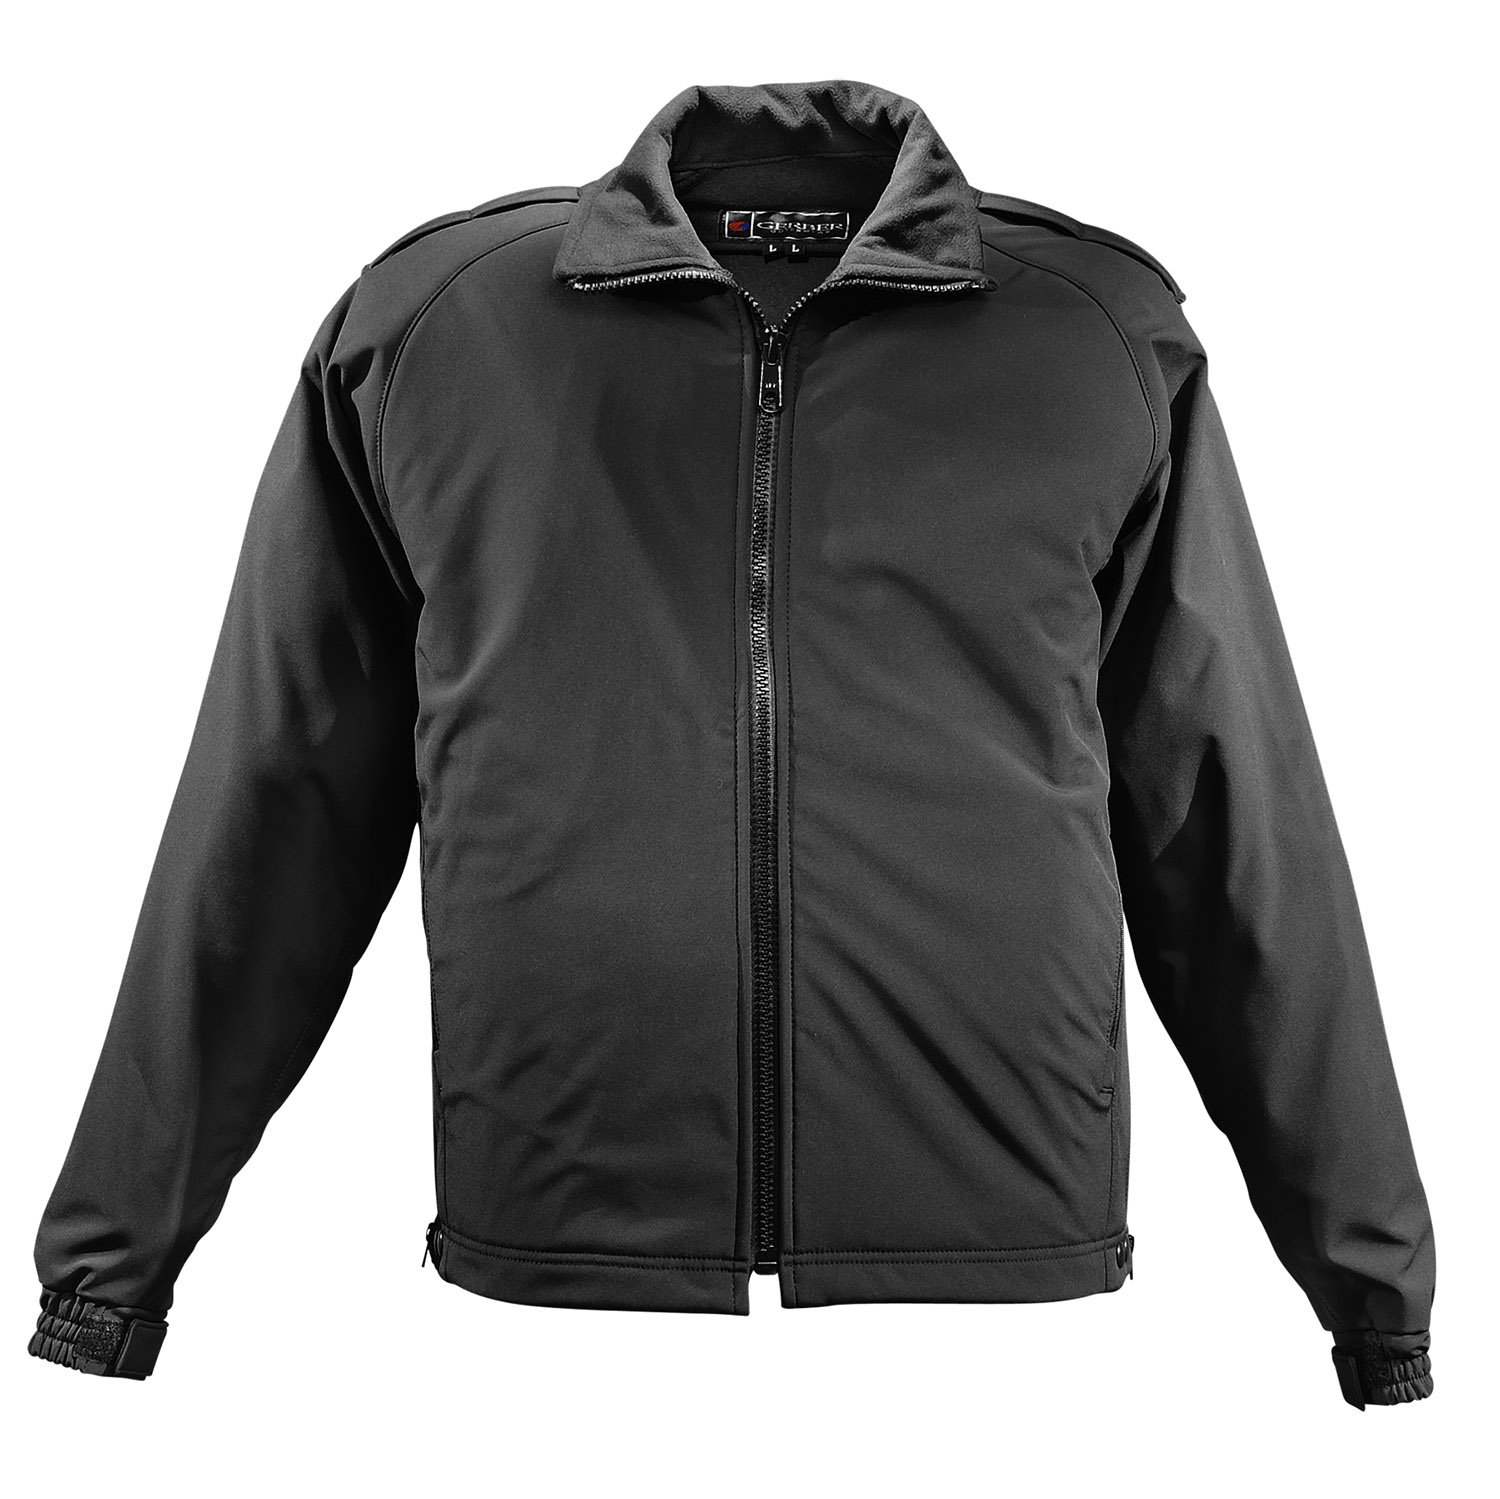 Gerber Outerwear Warrior Softshell Jacket/Liner